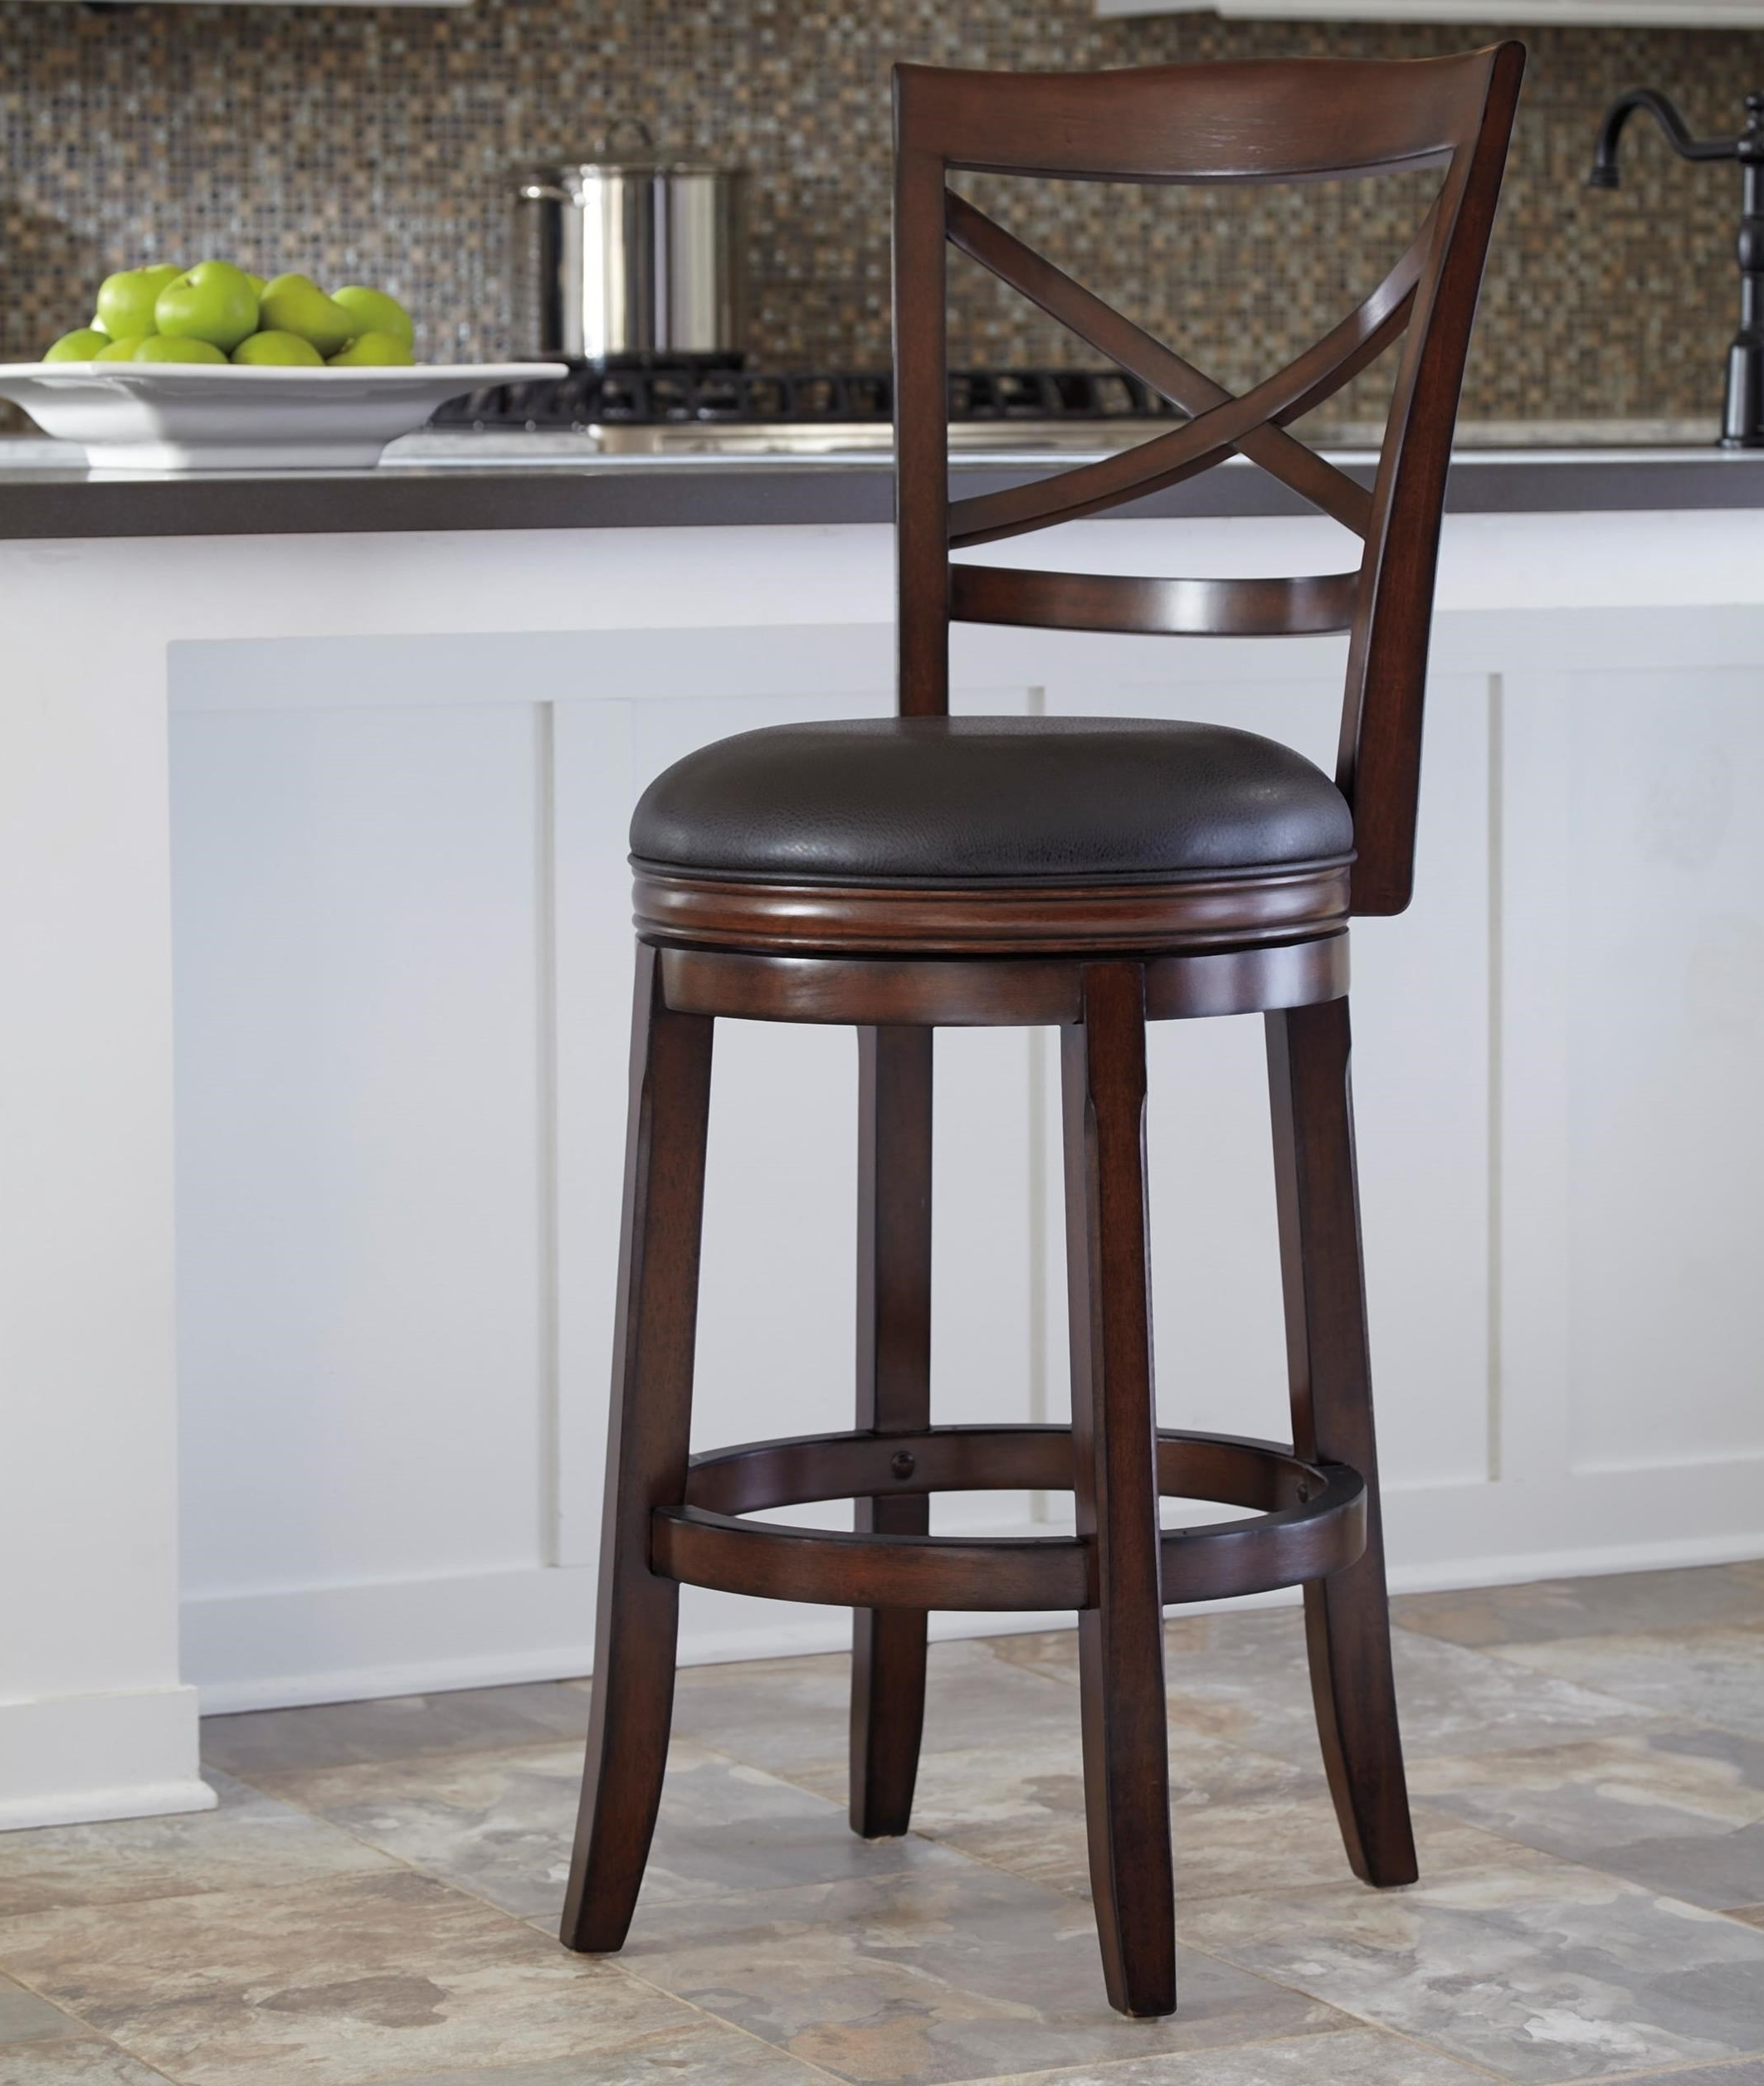 Fashionable Ashley Furniture Porter Bar Height X Back Tall Upholstered Swivel With Regard To Jaxon 5 Piece Extension Counter Sets With Wood Stools (View 8 of 25)